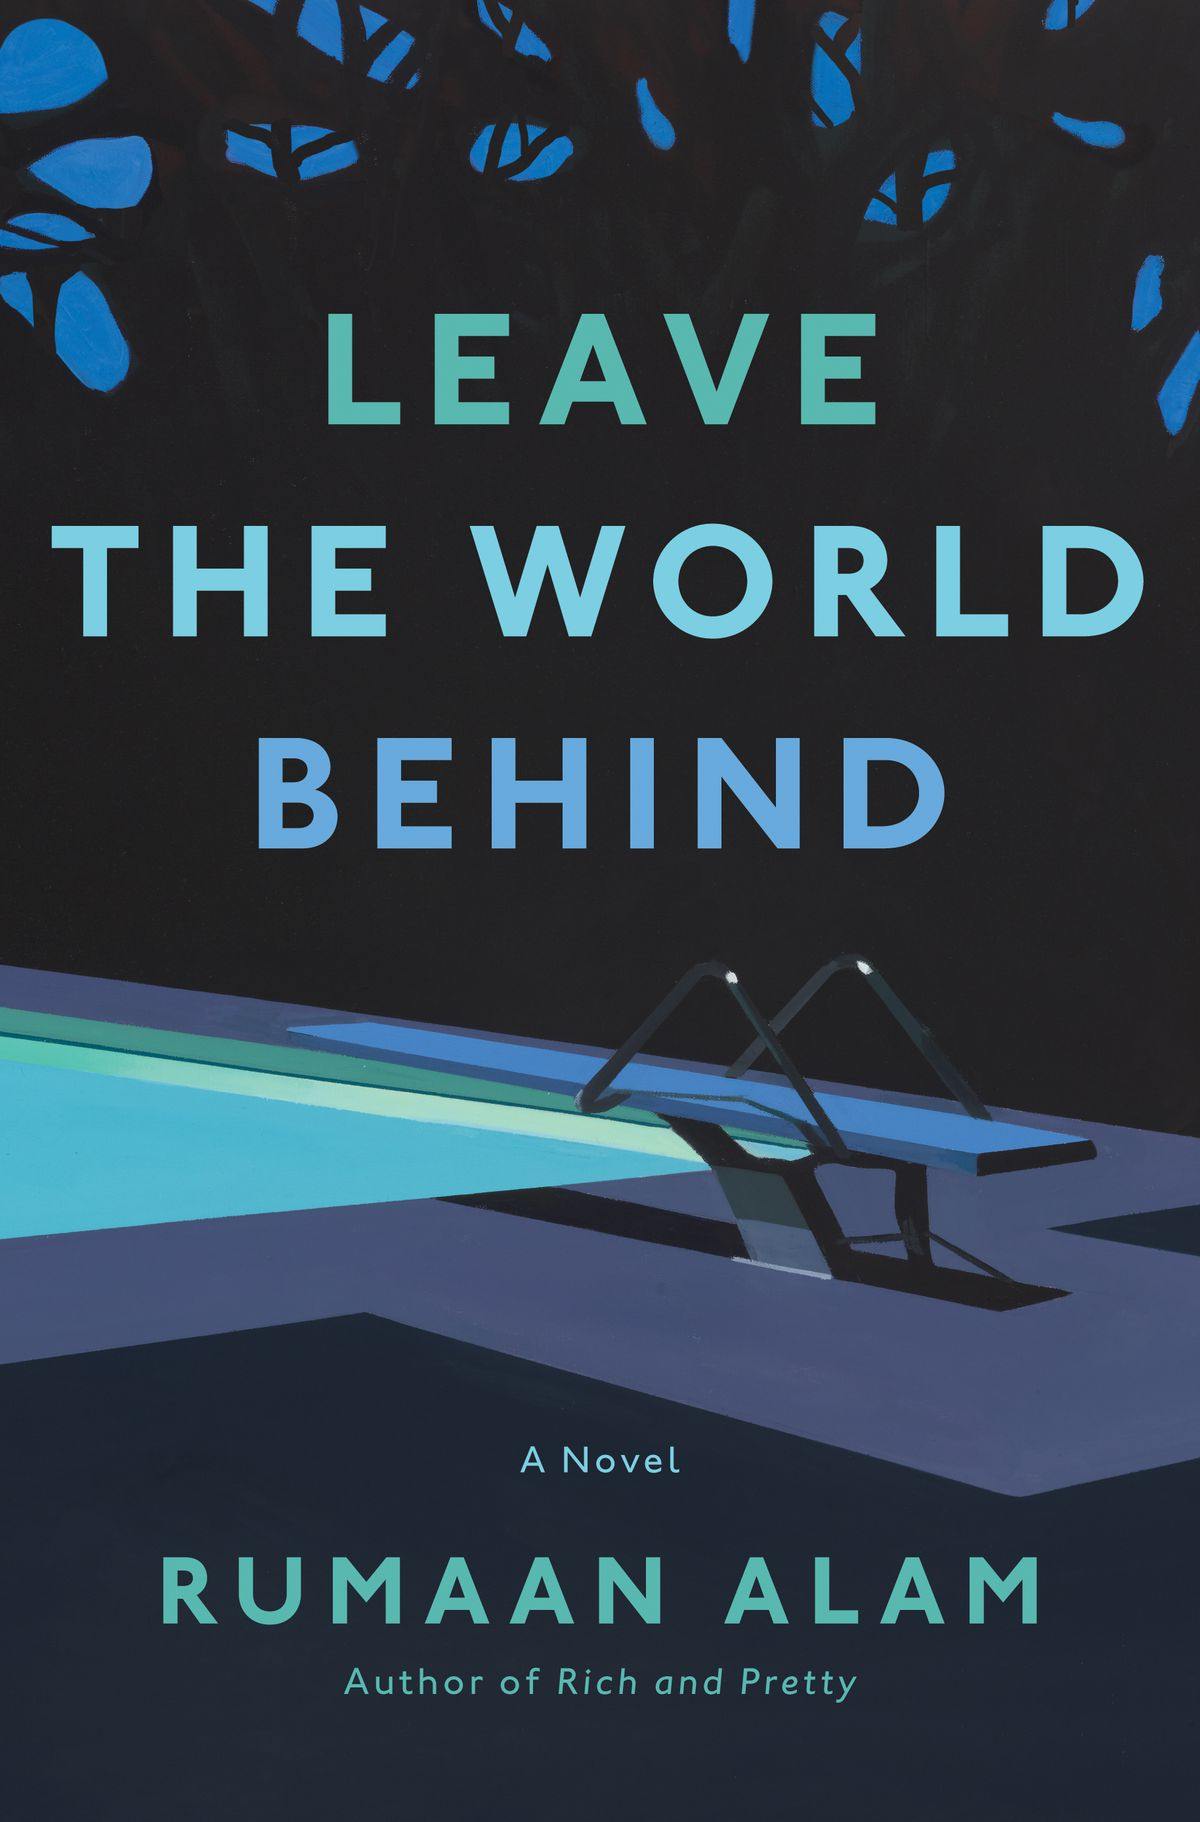 Cover of Leave the World Behind, a book by Rumaan Alam